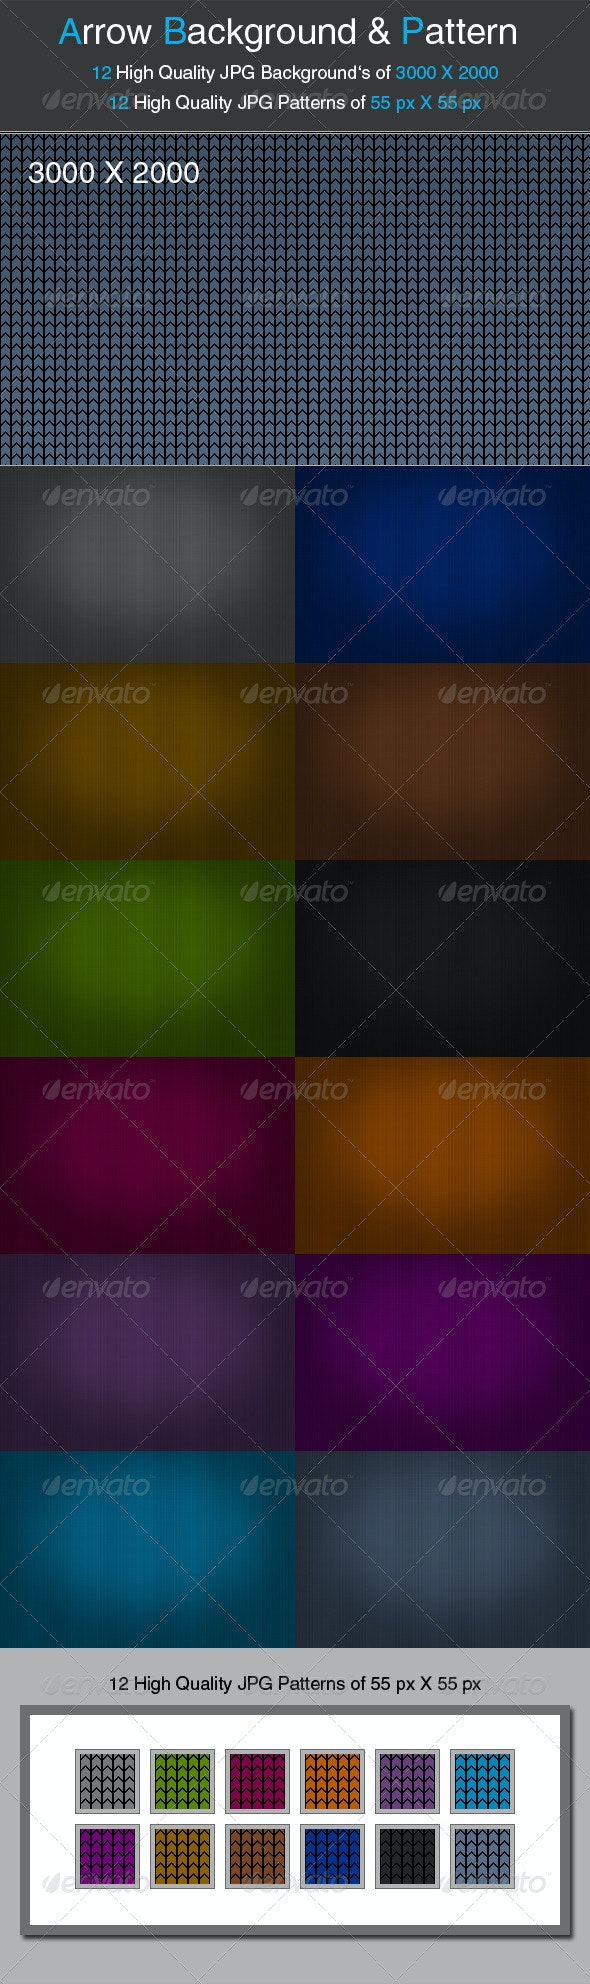 Arrow Background and Pattern - Backgrounds Graphics